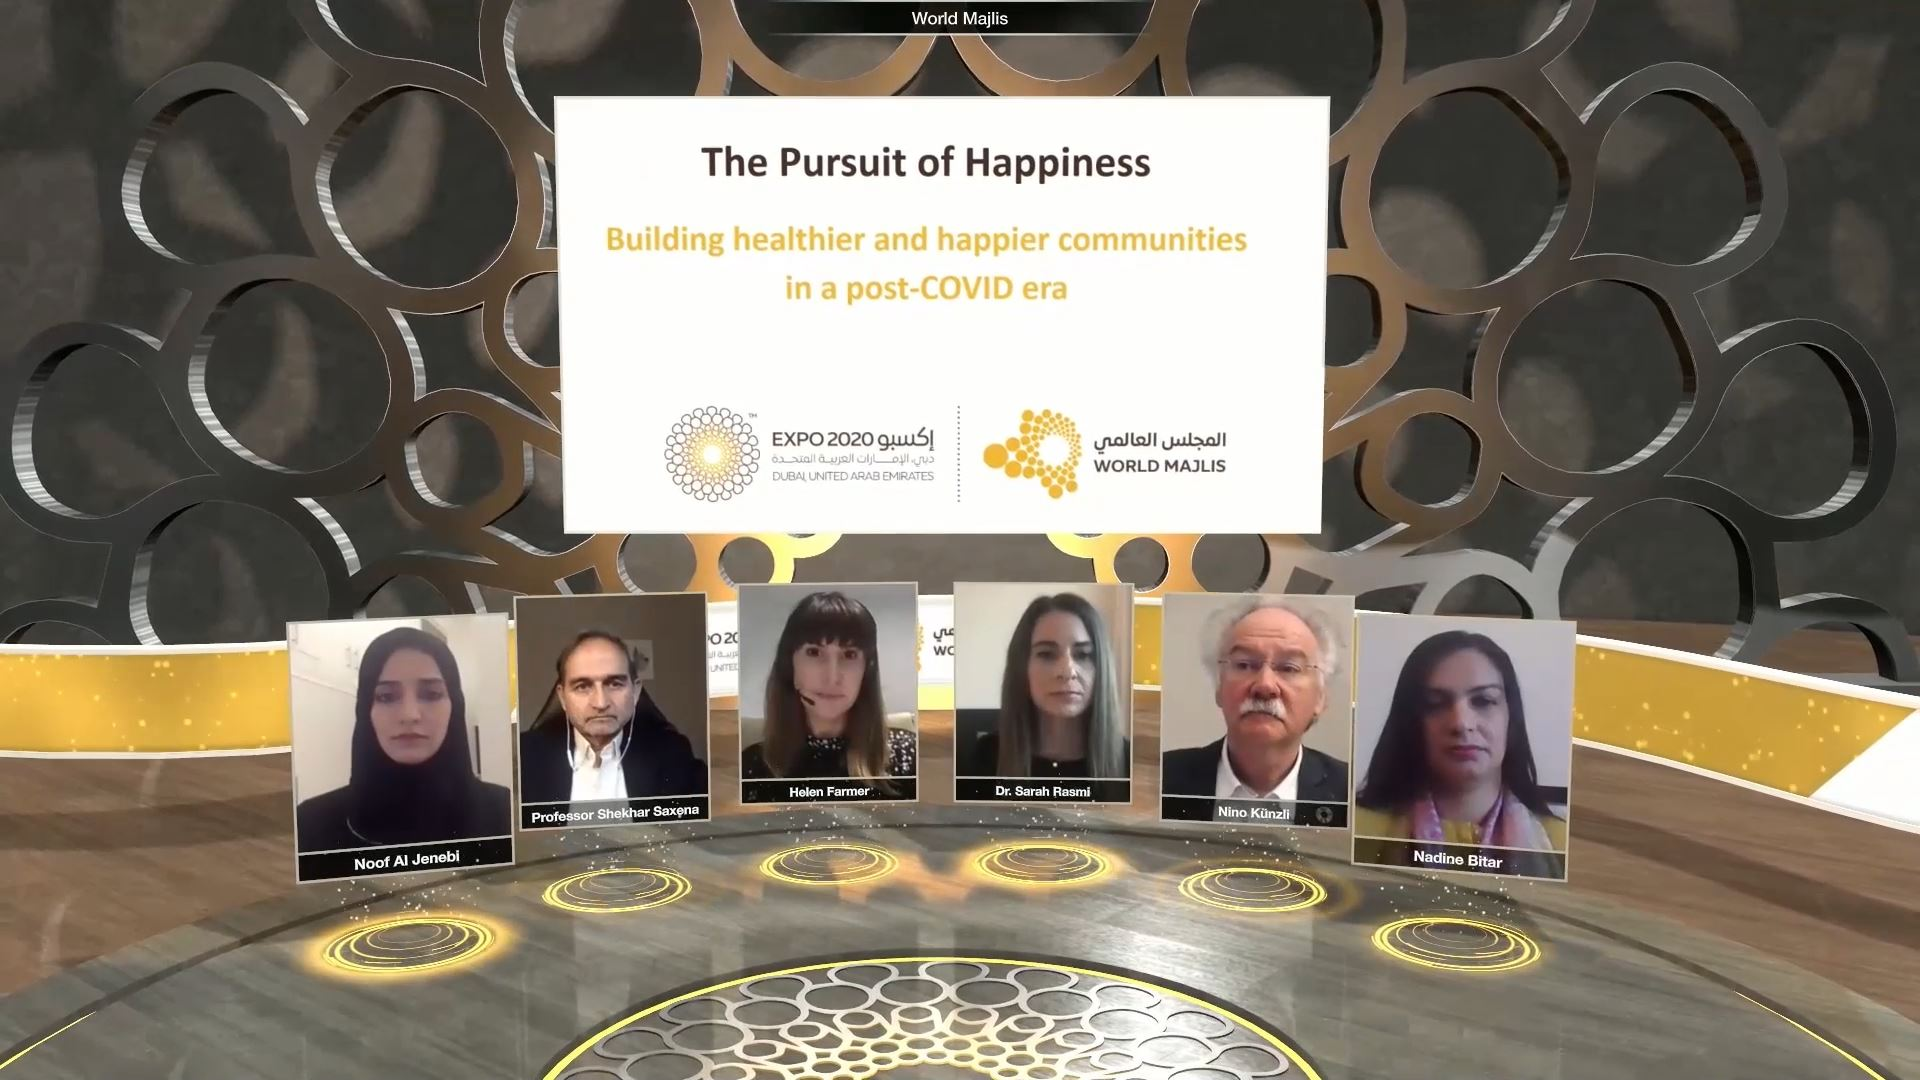 expo 2020 health and wellness week virtual event panel duscussion